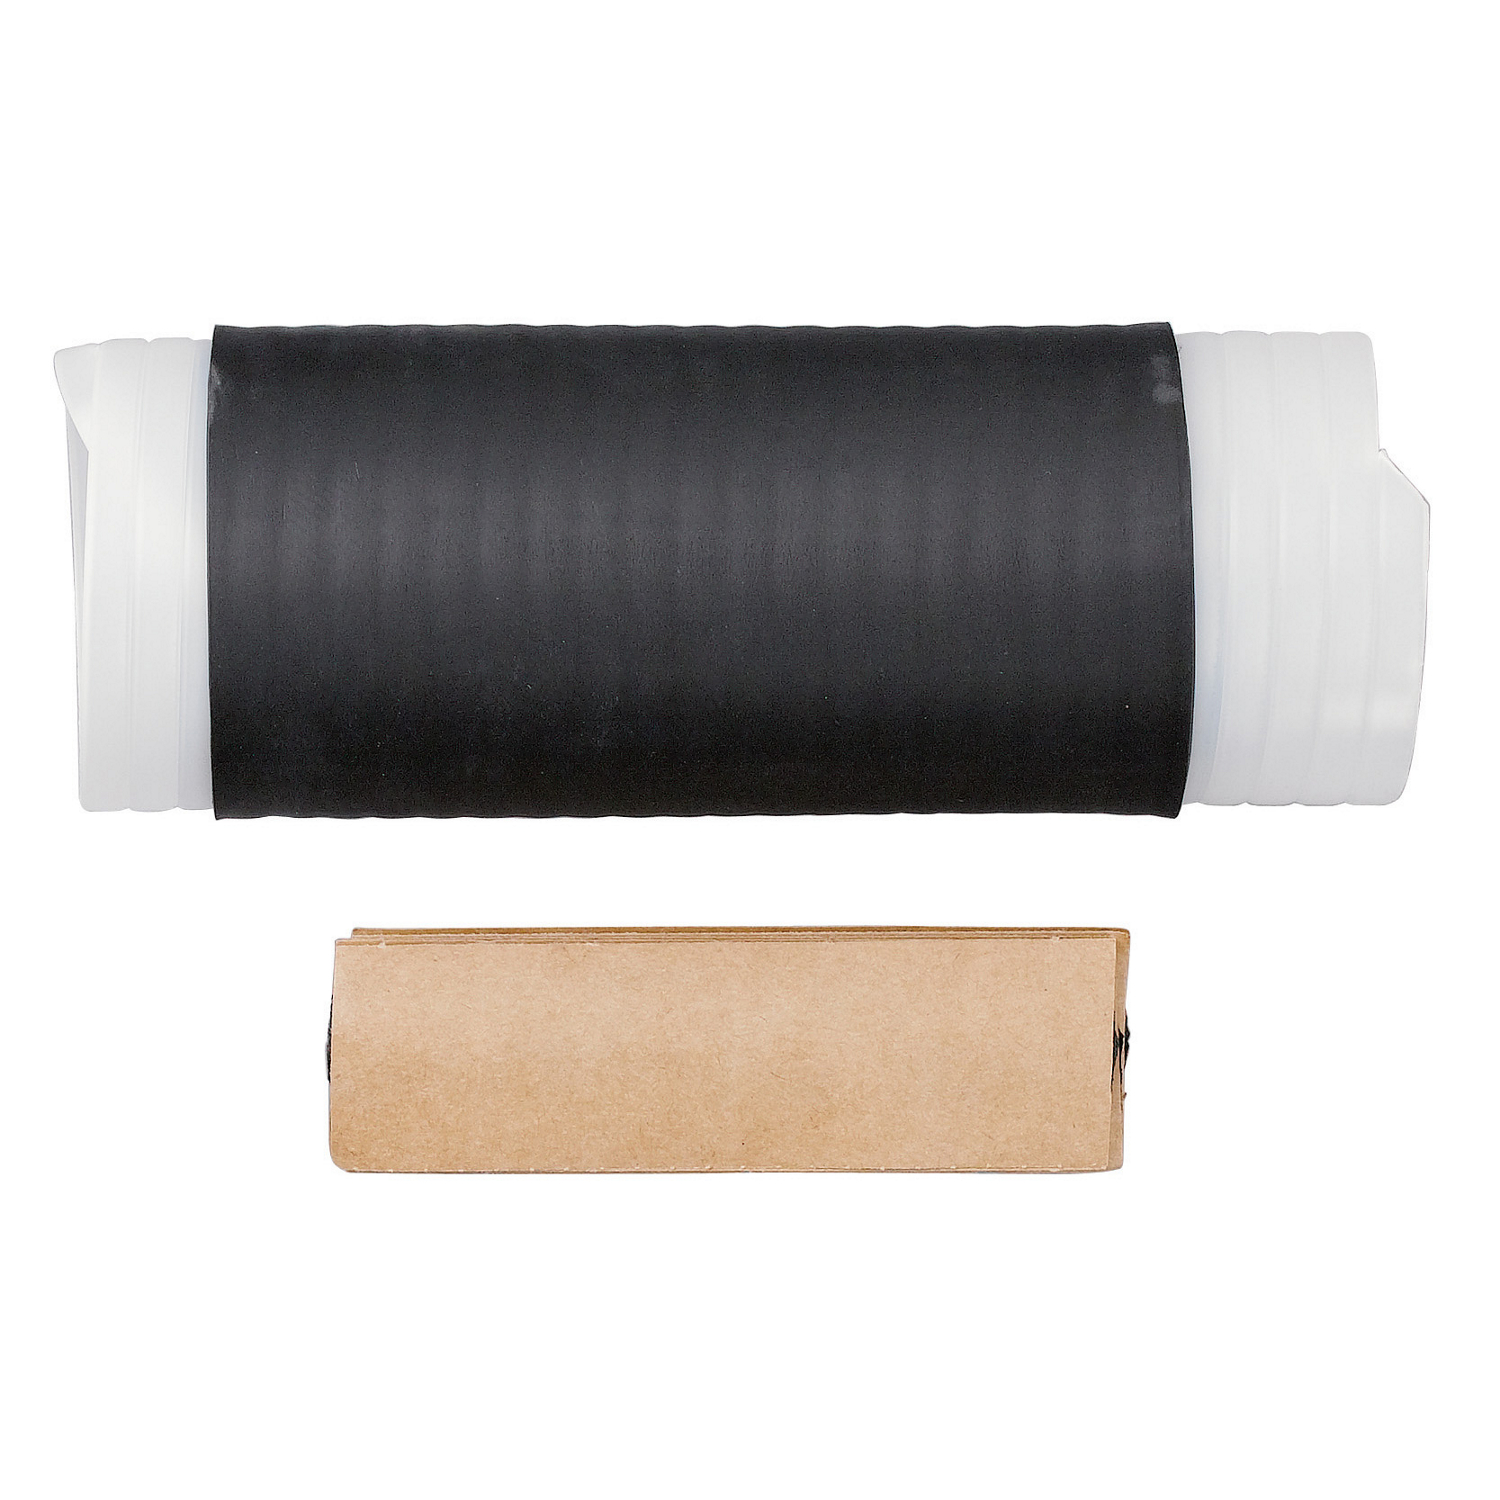 ELBOW CABLE SEALING KIT